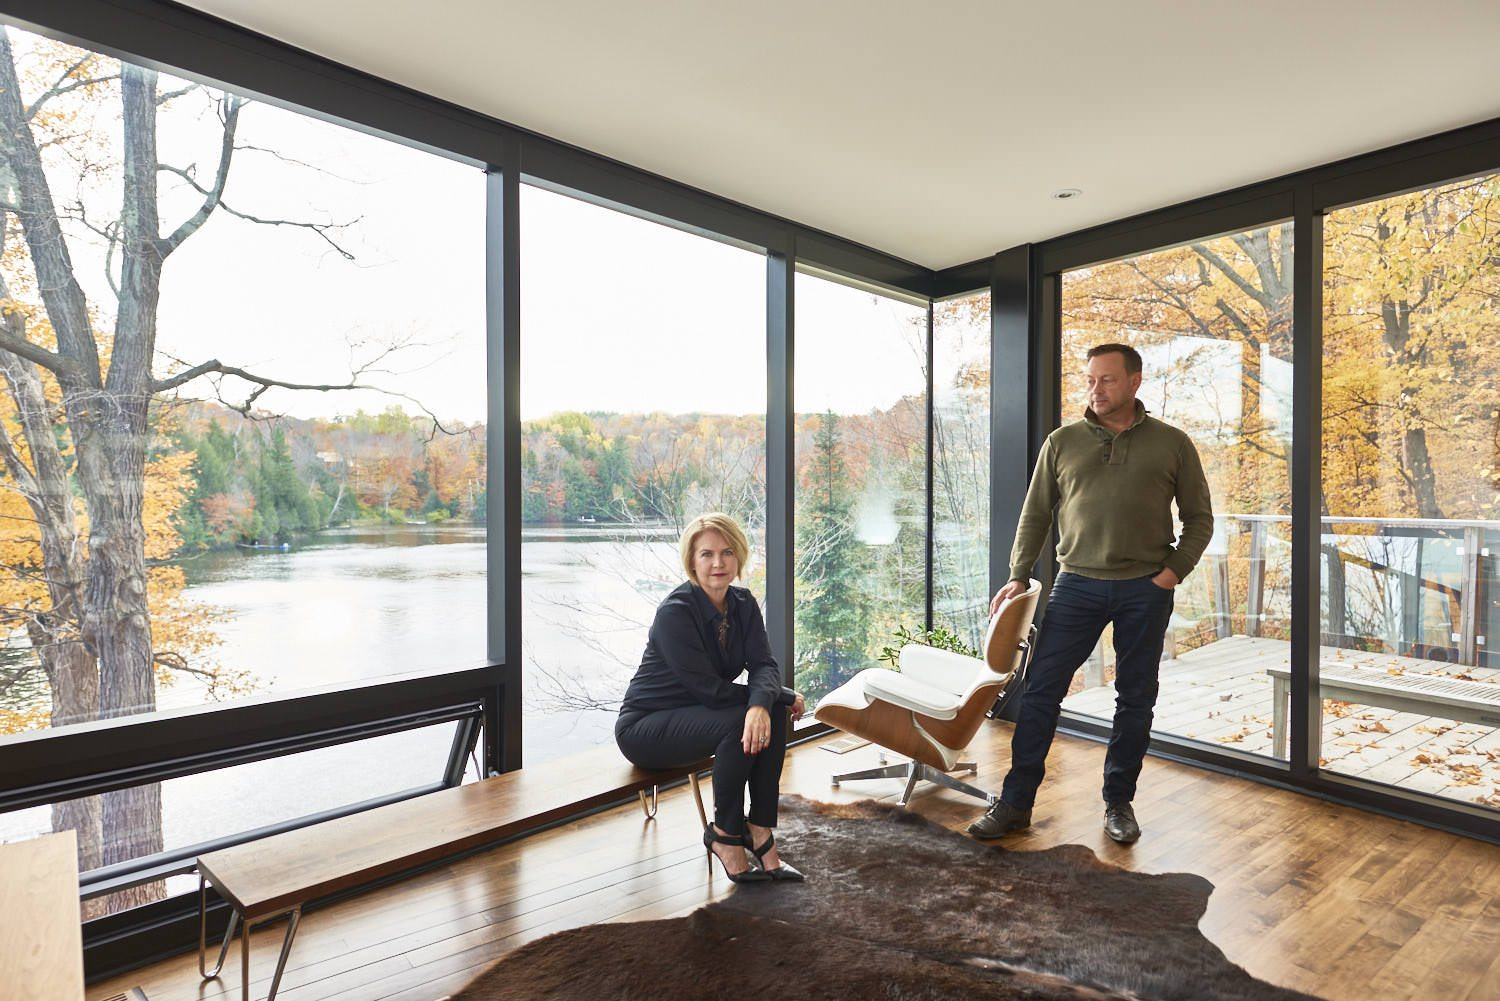 Owner Gordon McMillan with Marie-Claude Faubert, whose company, Faubert Interiors, oversaw the renovation. One of the designer's recommendations was adding floor-to-ceiling windows in rooms with spectacular views of the river. Photography PhotoluxStudio.com — Christian Lalonde